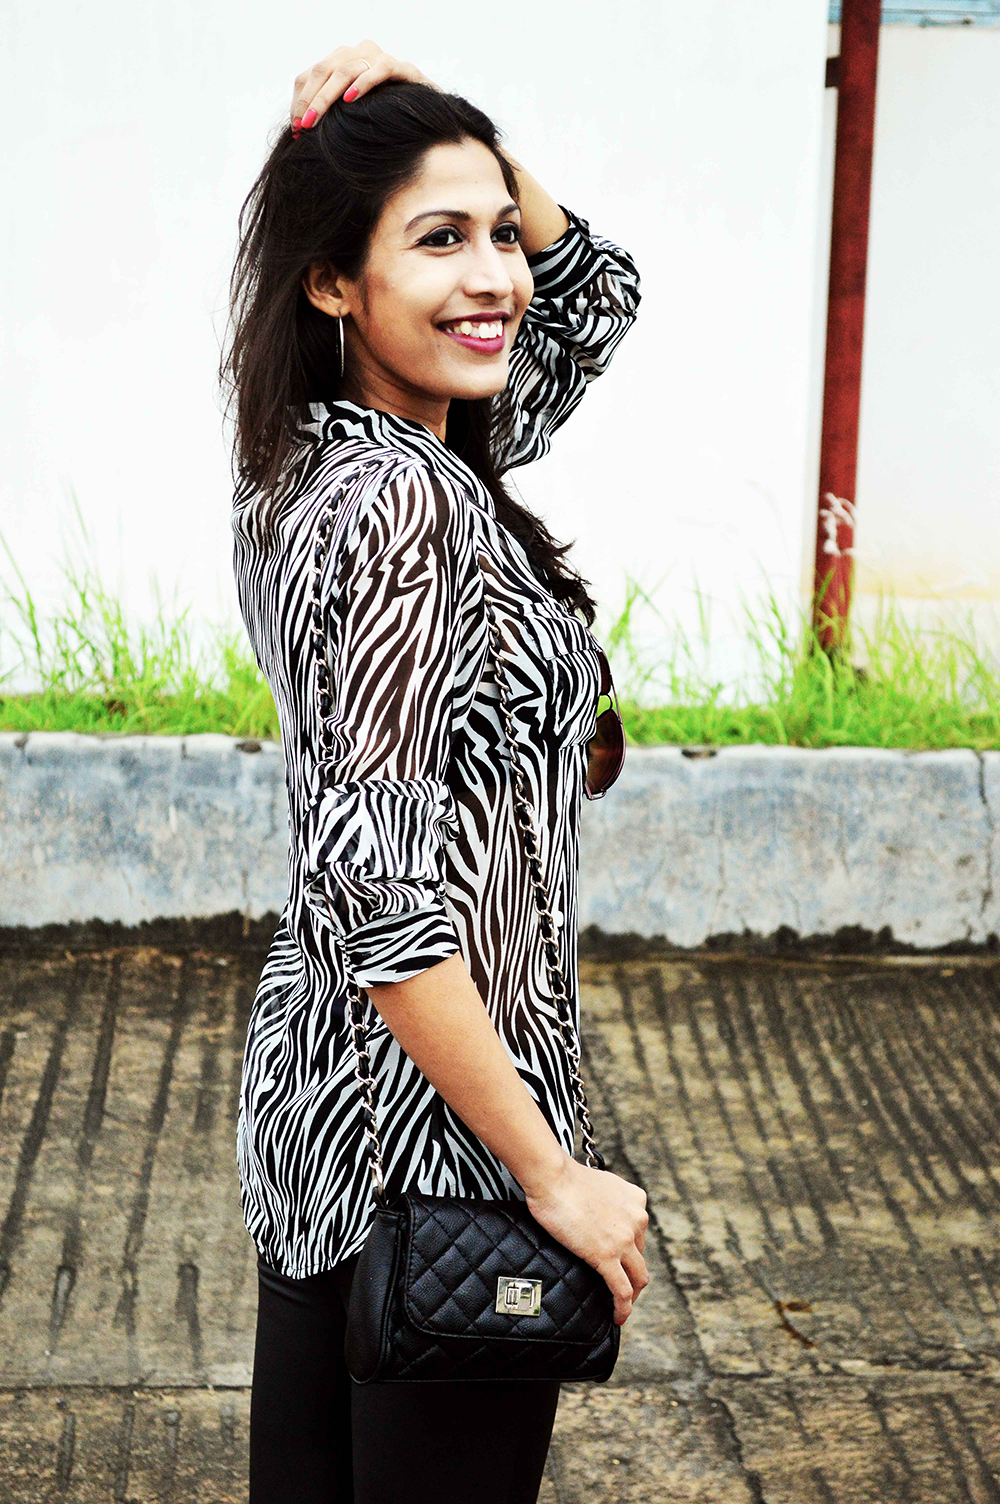 Fashion, Style, Indian Fashion Blogger, Fashion Blogger, Photography, Fashion Photography, Animal Prints, Street Style, Zebra Printed Shirt 2